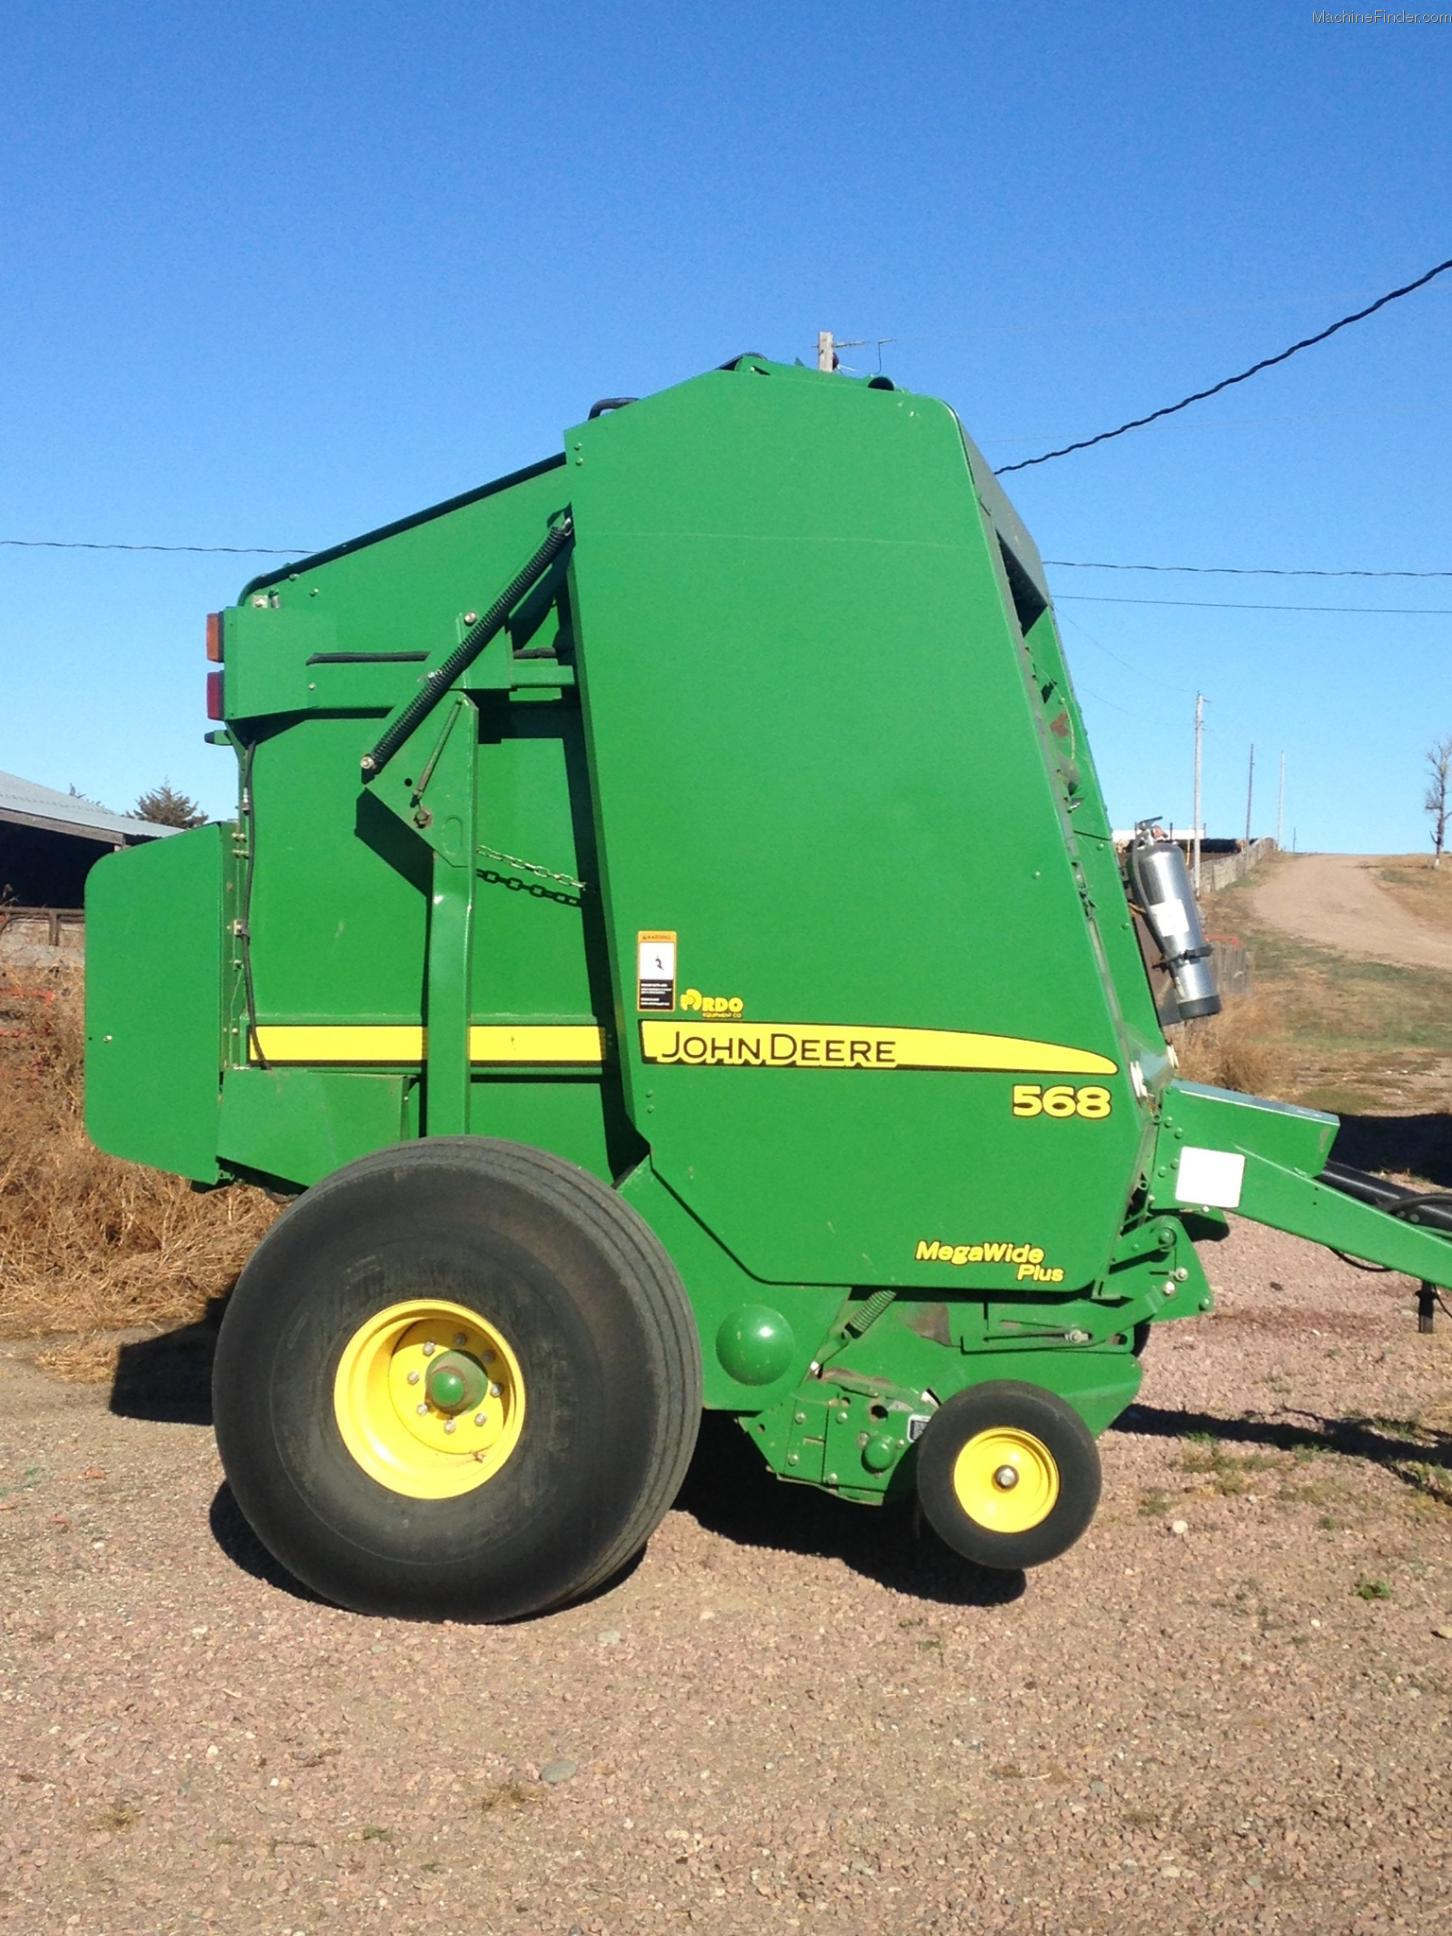 567 john Deere baler Manual